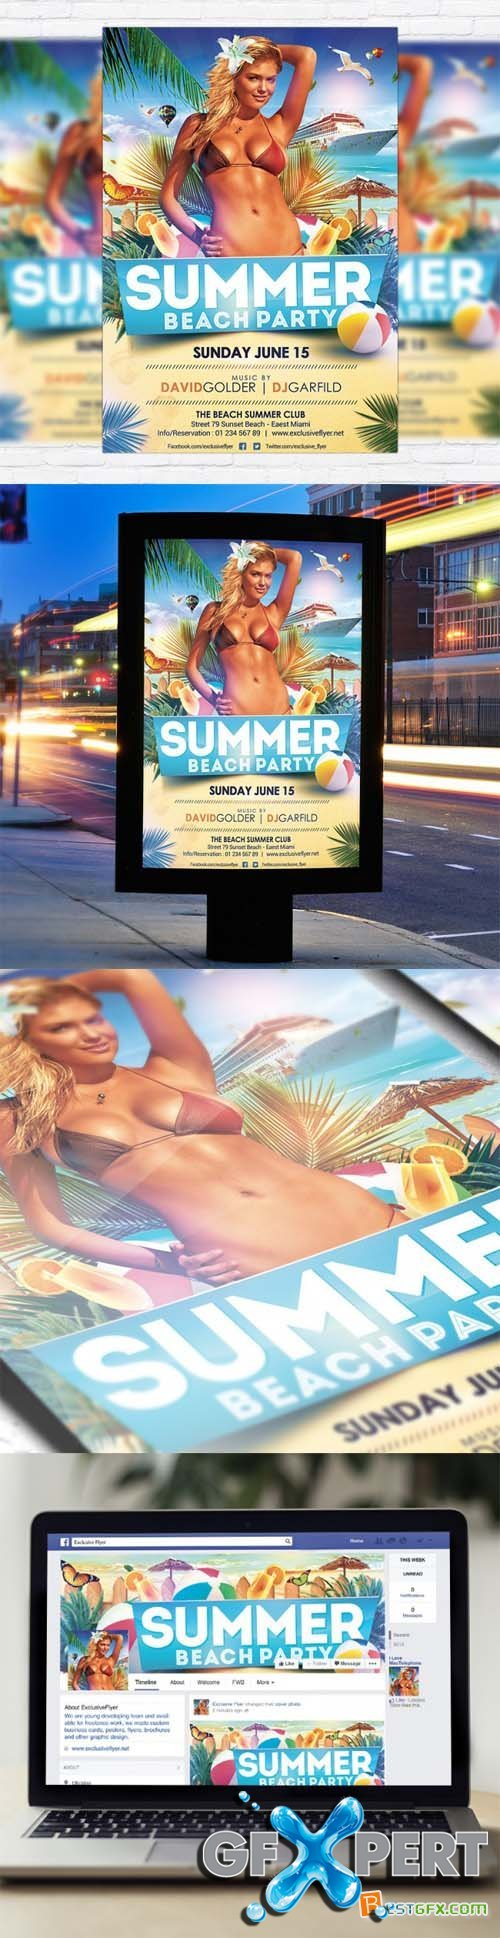 Flyer Template - Summer Beach Party + Facebook Cover